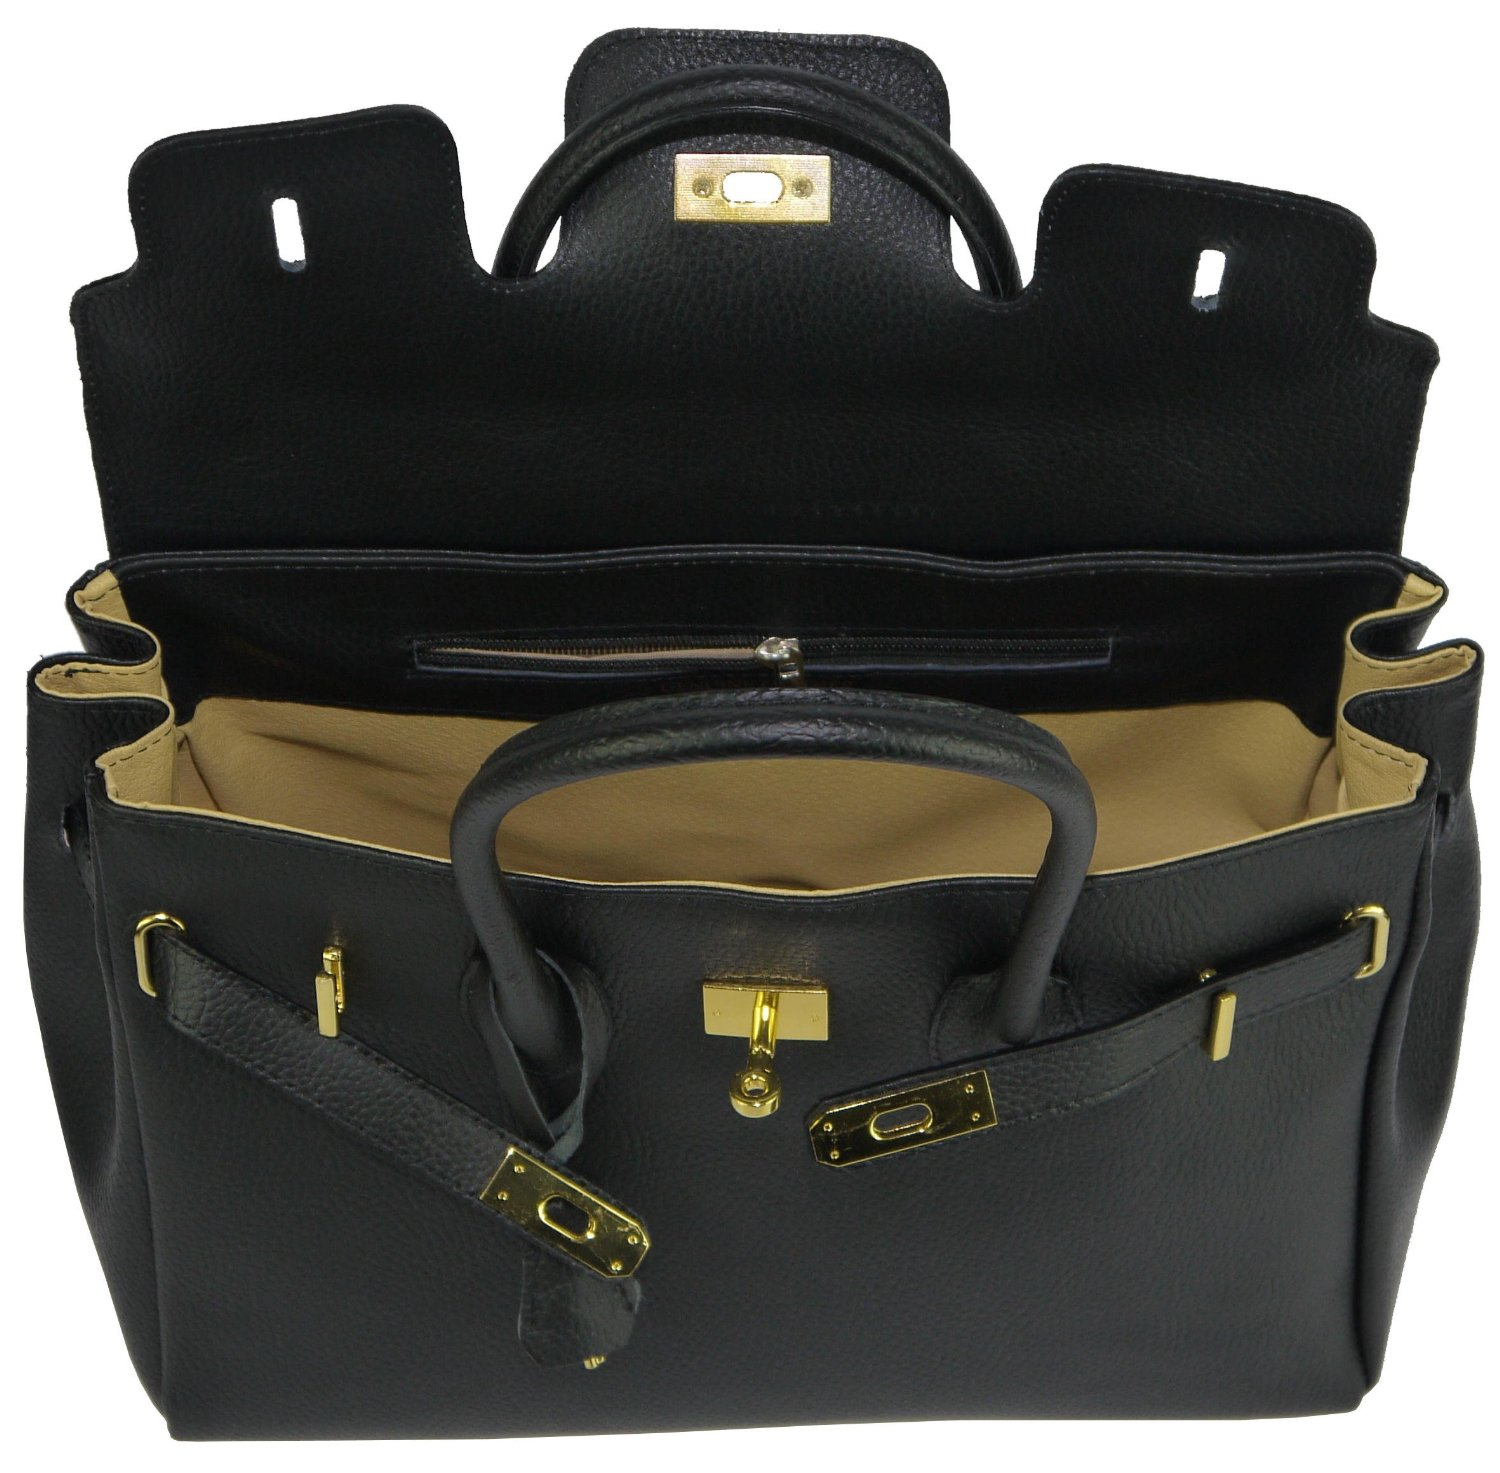 http://www.conmigolondon.co.uk/ekmps/shops/conmigo/images/1a.-real-italian-leather-brealleather-0011-big-black-real-leather-bag-made-in-florence-italy.-%5B4%5D-2405-p.jpg